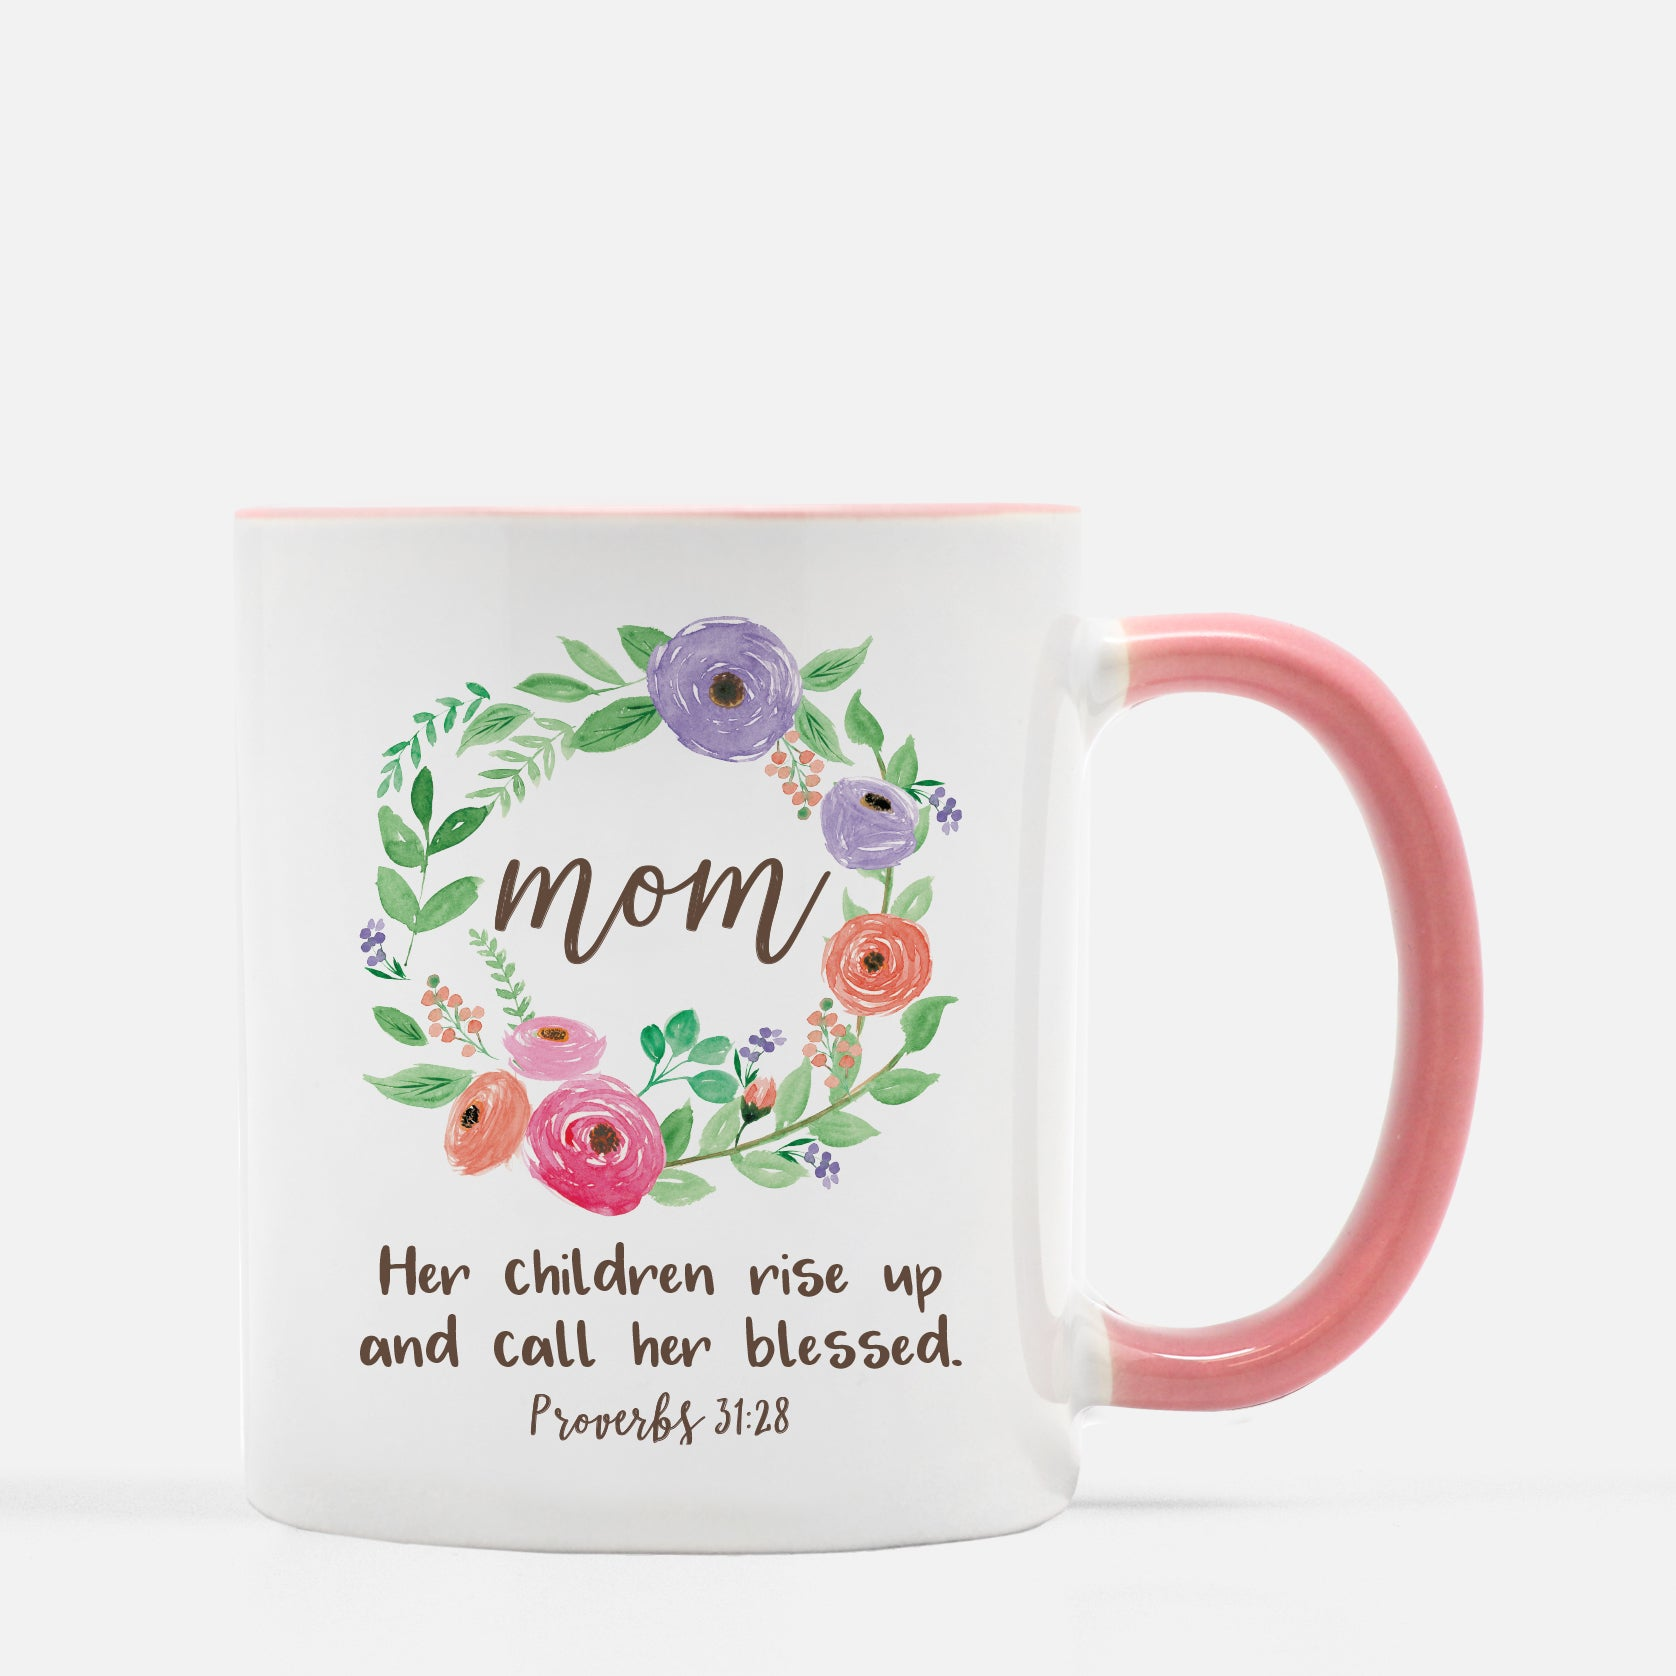 Mom Her Children Rise Up and Call Her Blessed Mug Mom Coffee Mug Mother's Day Gift Christian Gift for Mom